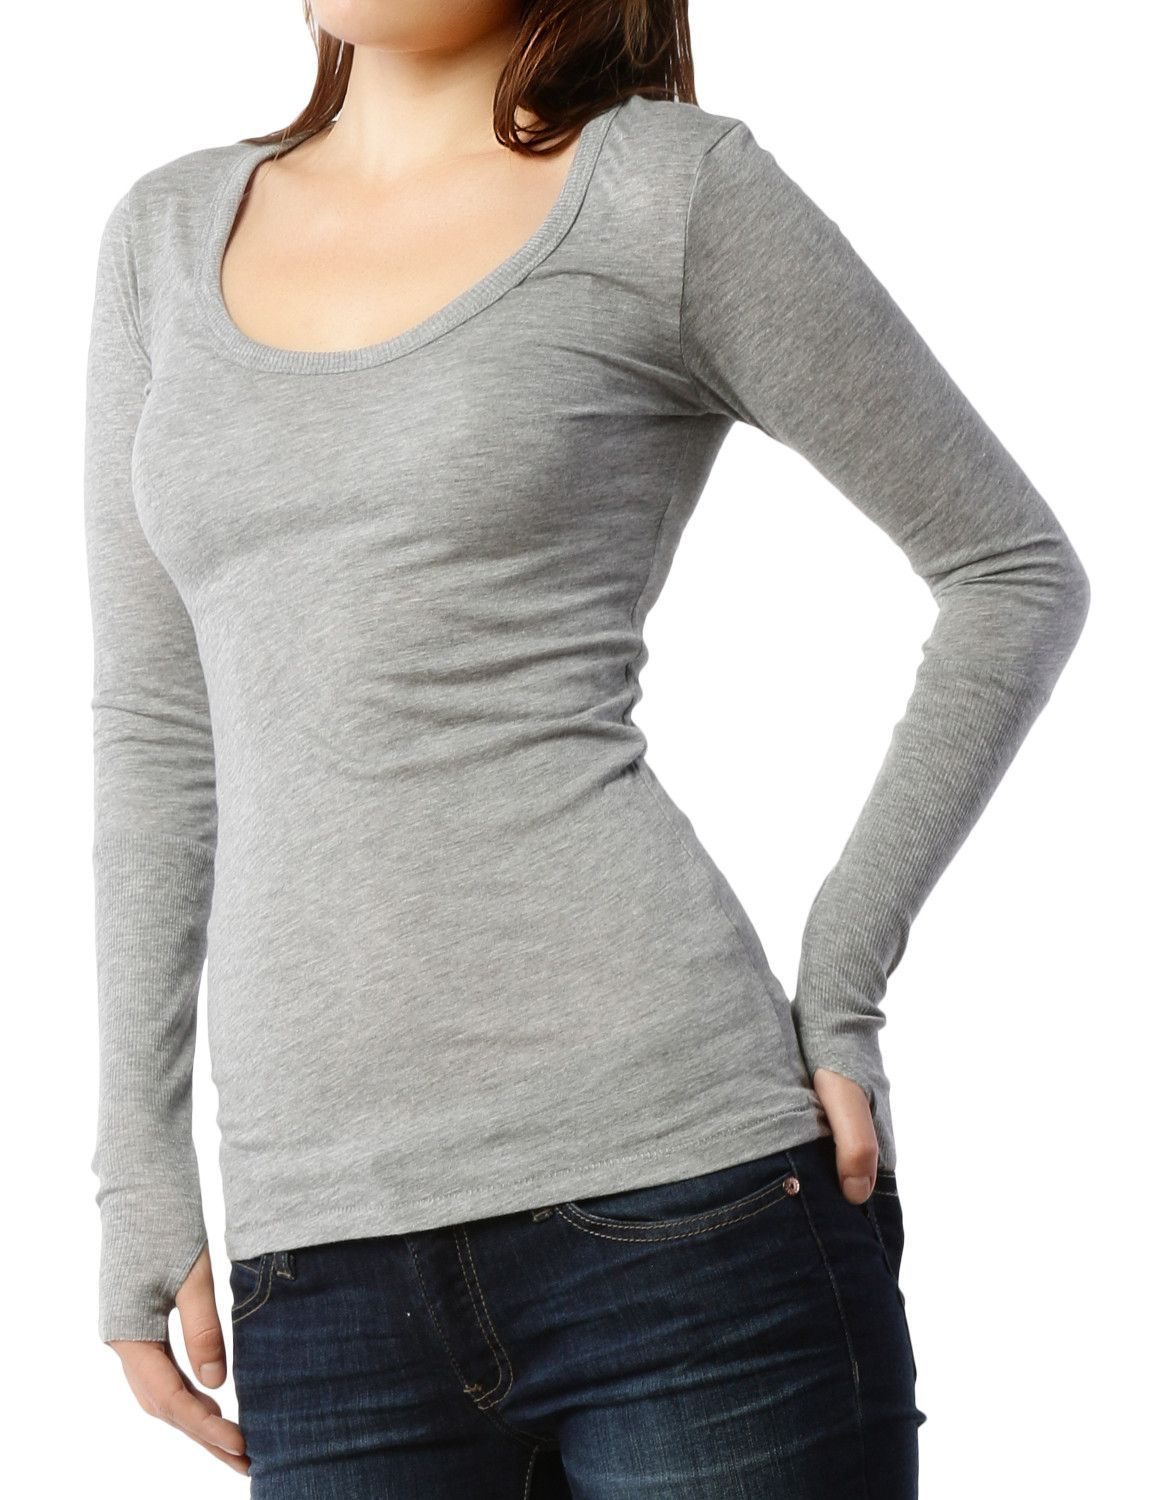 LE3NO PREMIUM Womens Lightweight Scoop Neck Thermal Shirt with Thumb Hole